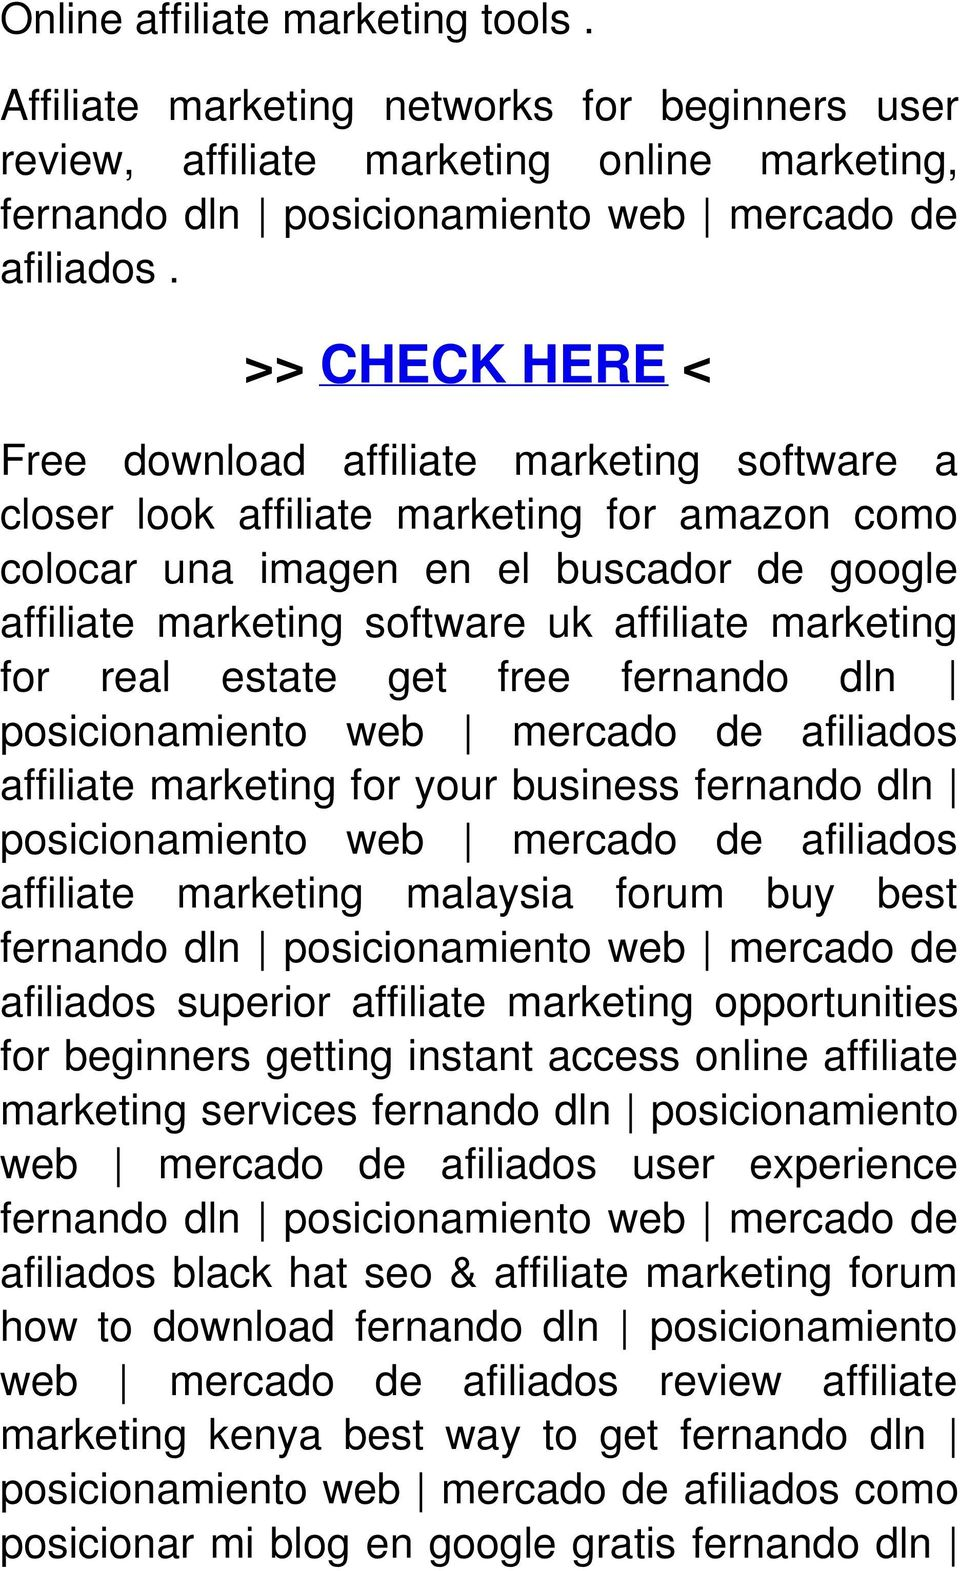 marketing for real estate get free fernando dln affiliate marketing for your business fernando dln affiliate marketing malaysia forum buy best afiliados superior affiliate marketing opportunities for